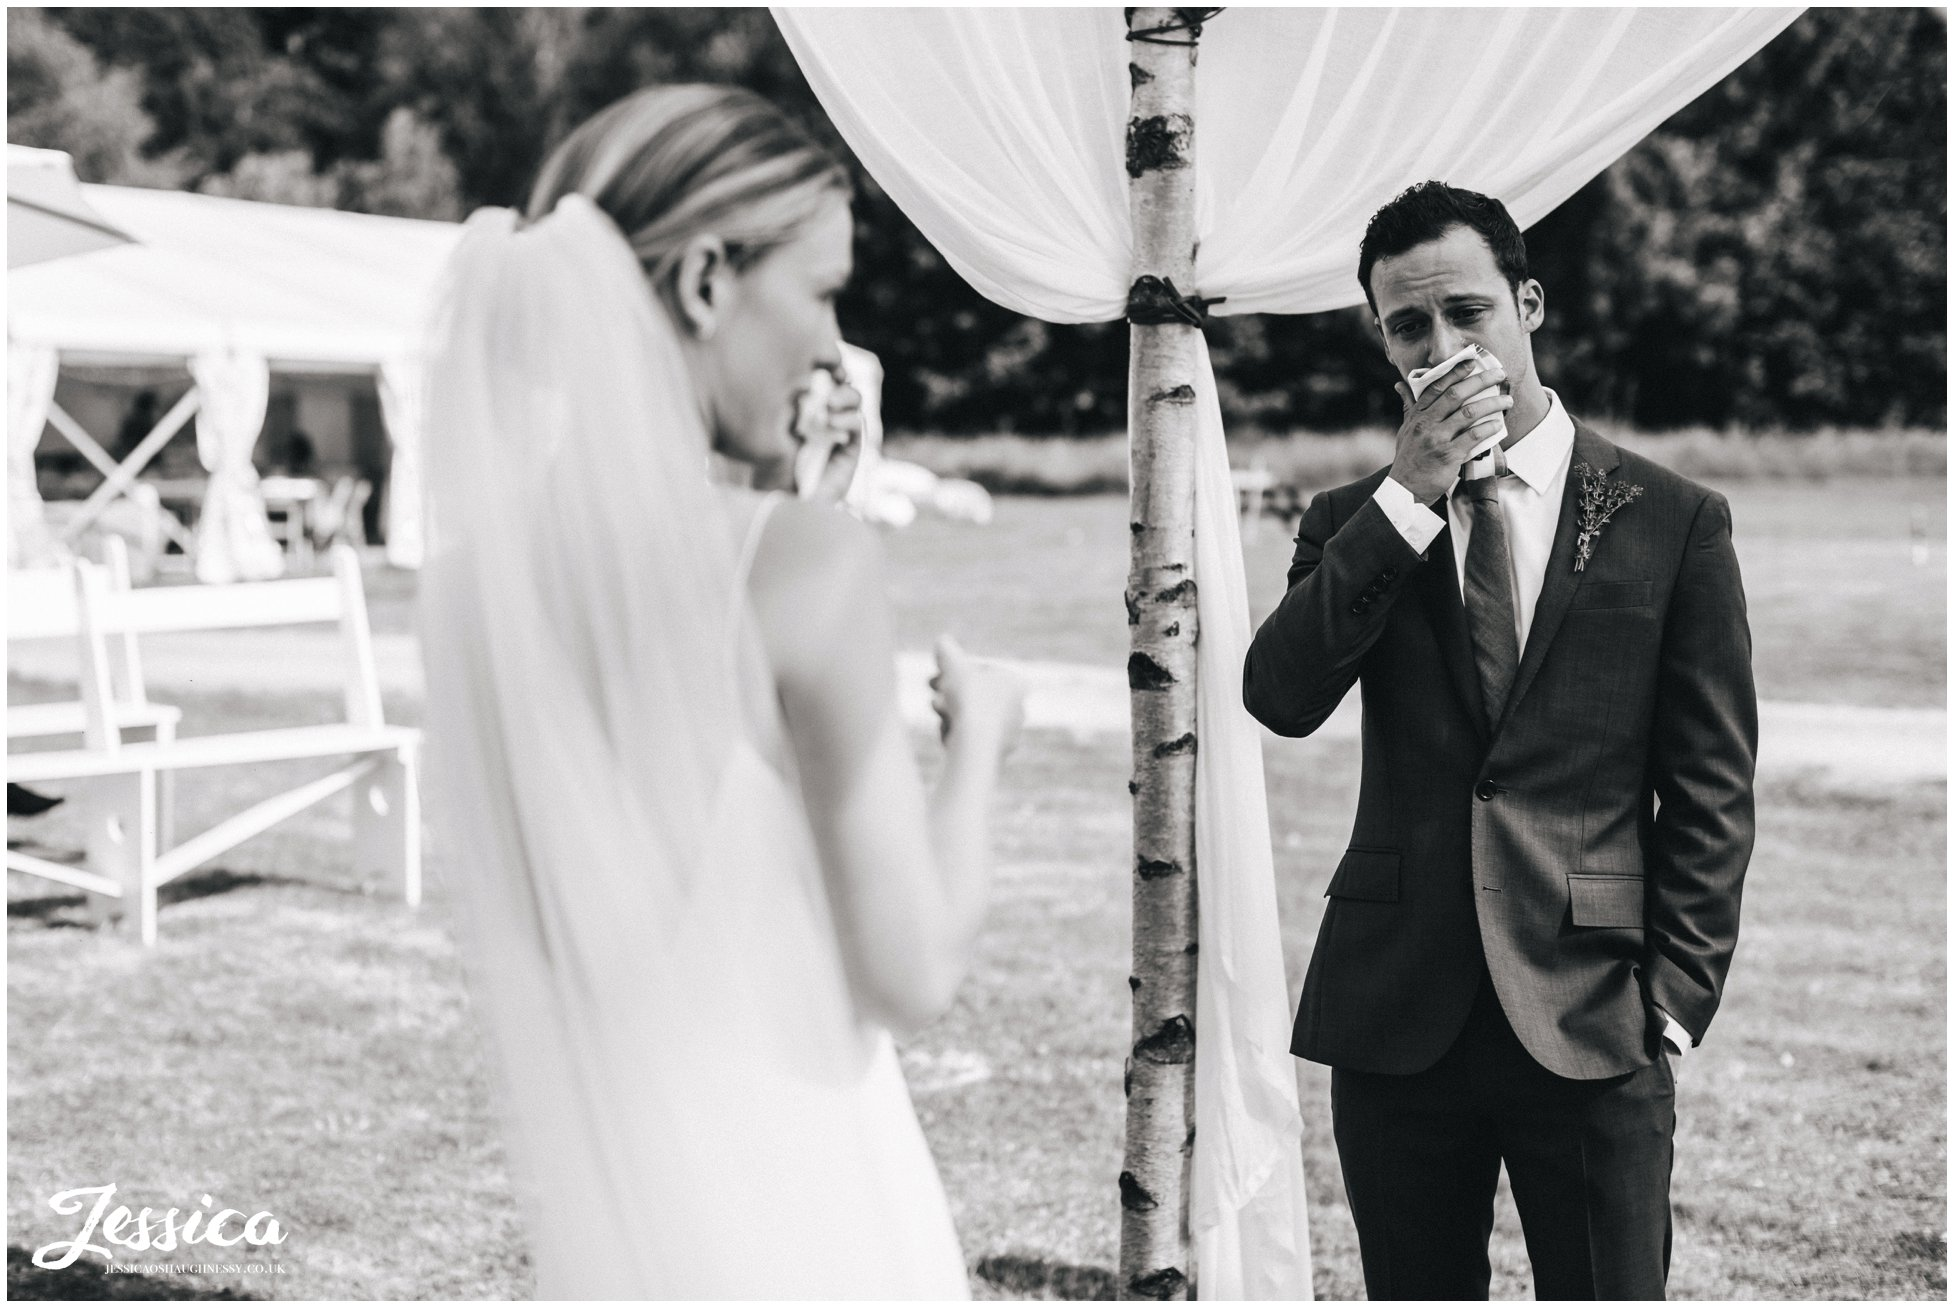 the couple wipe away tears during the emotional north wales wedding ceremony